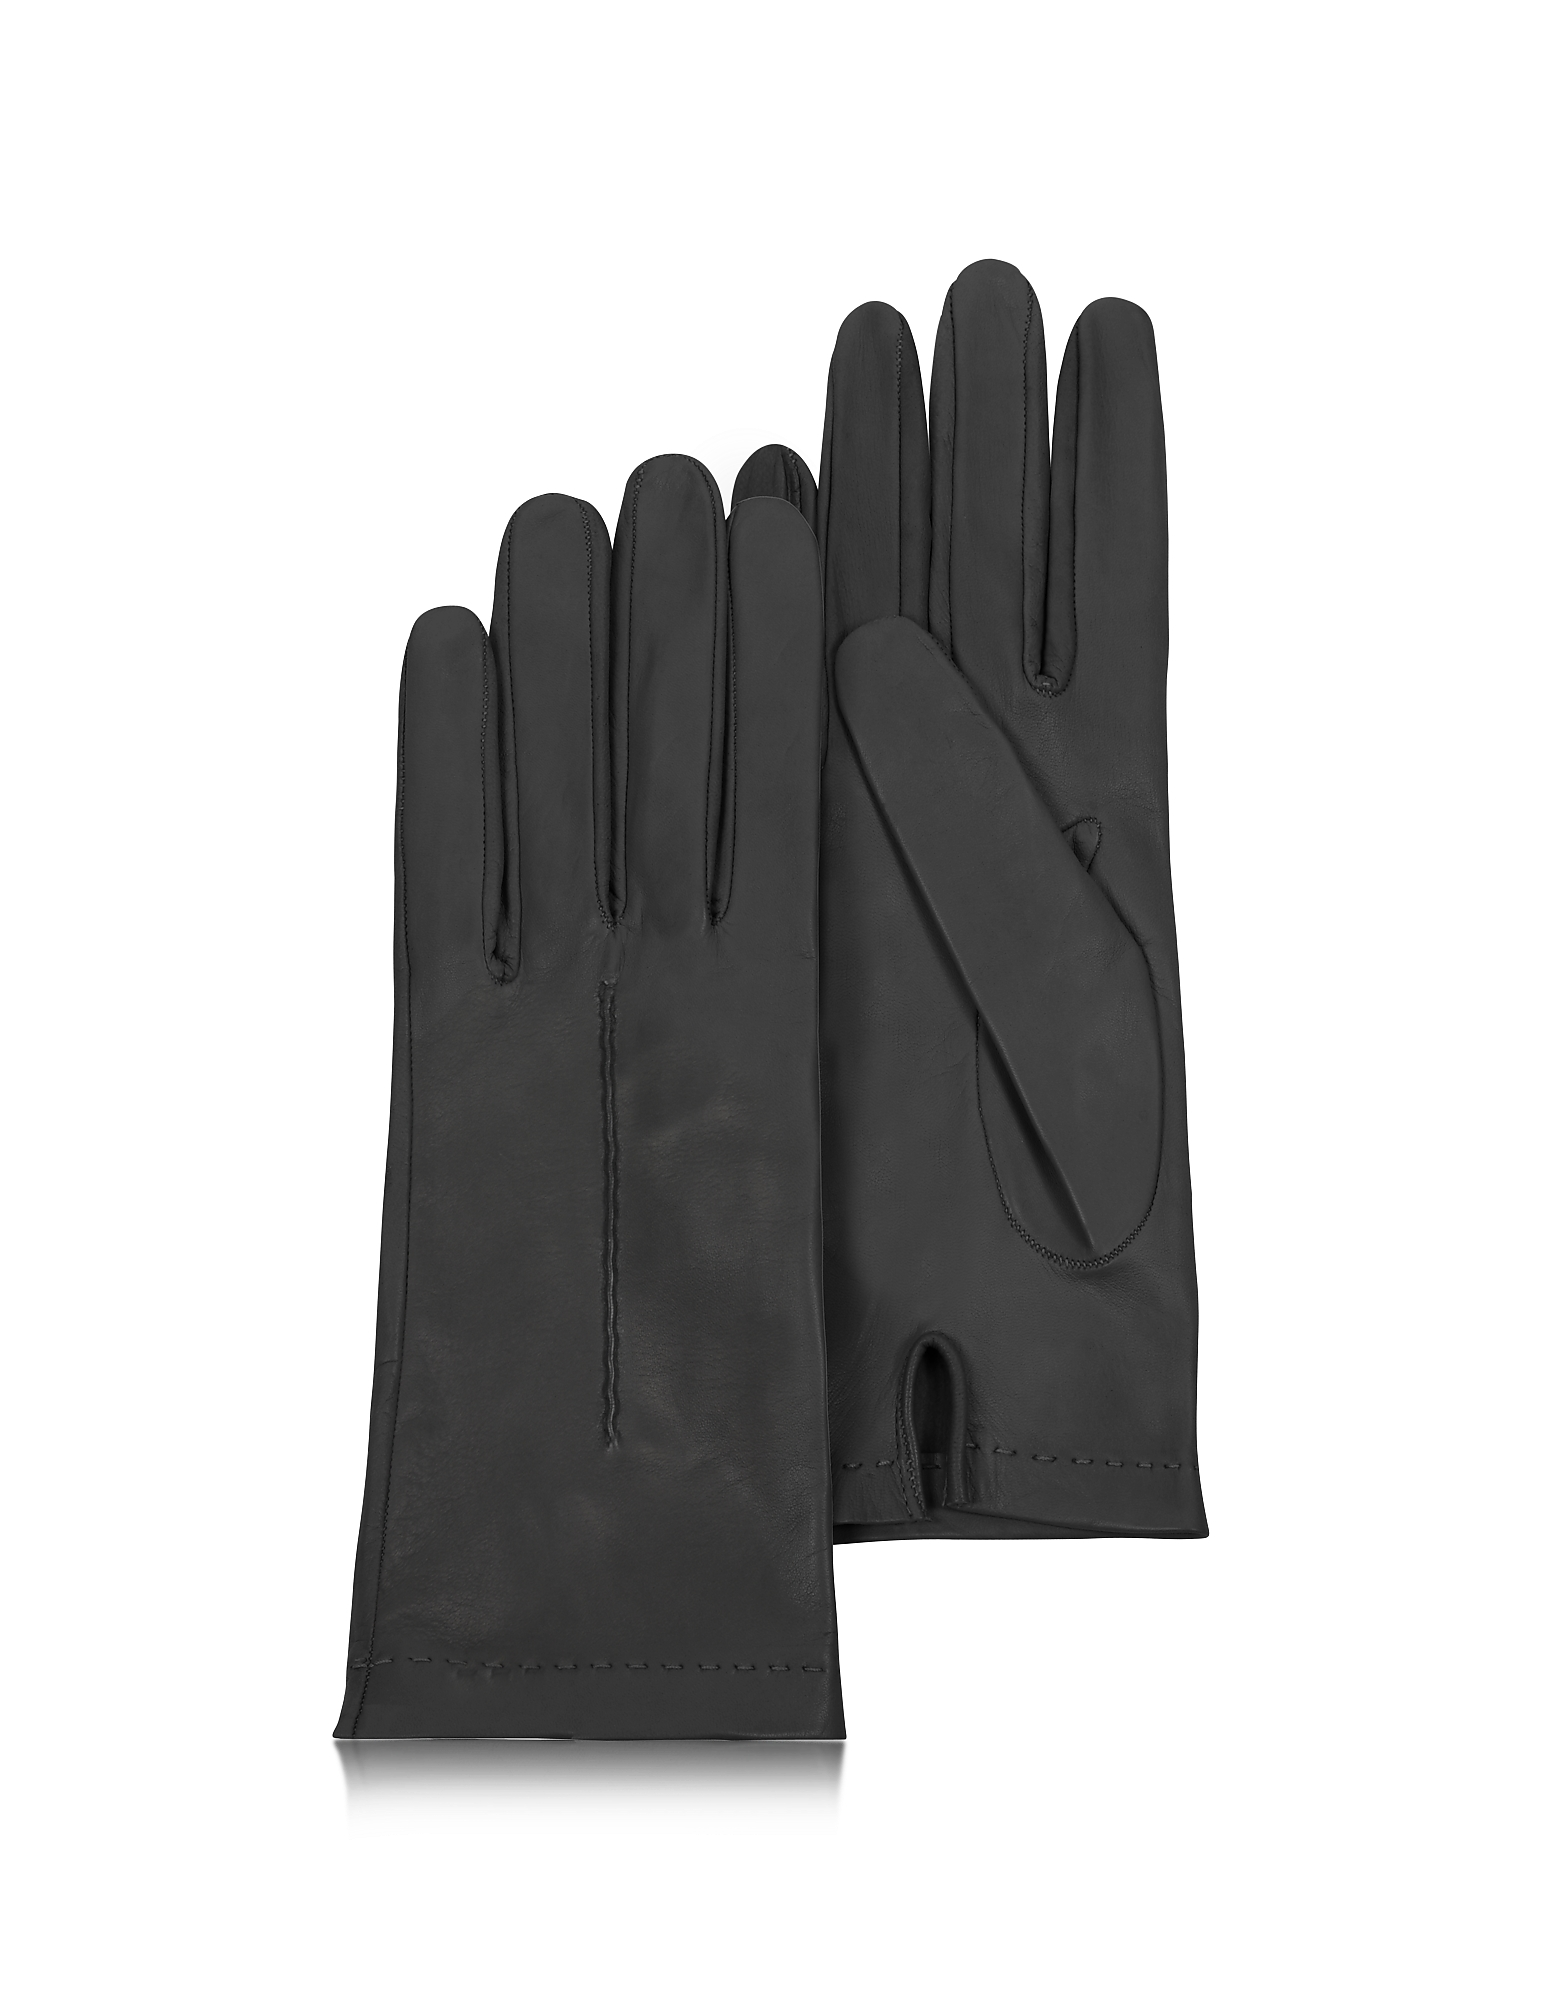 Forzieri Women's Gloves, Women's Black Unlined Italian Leather Gloves